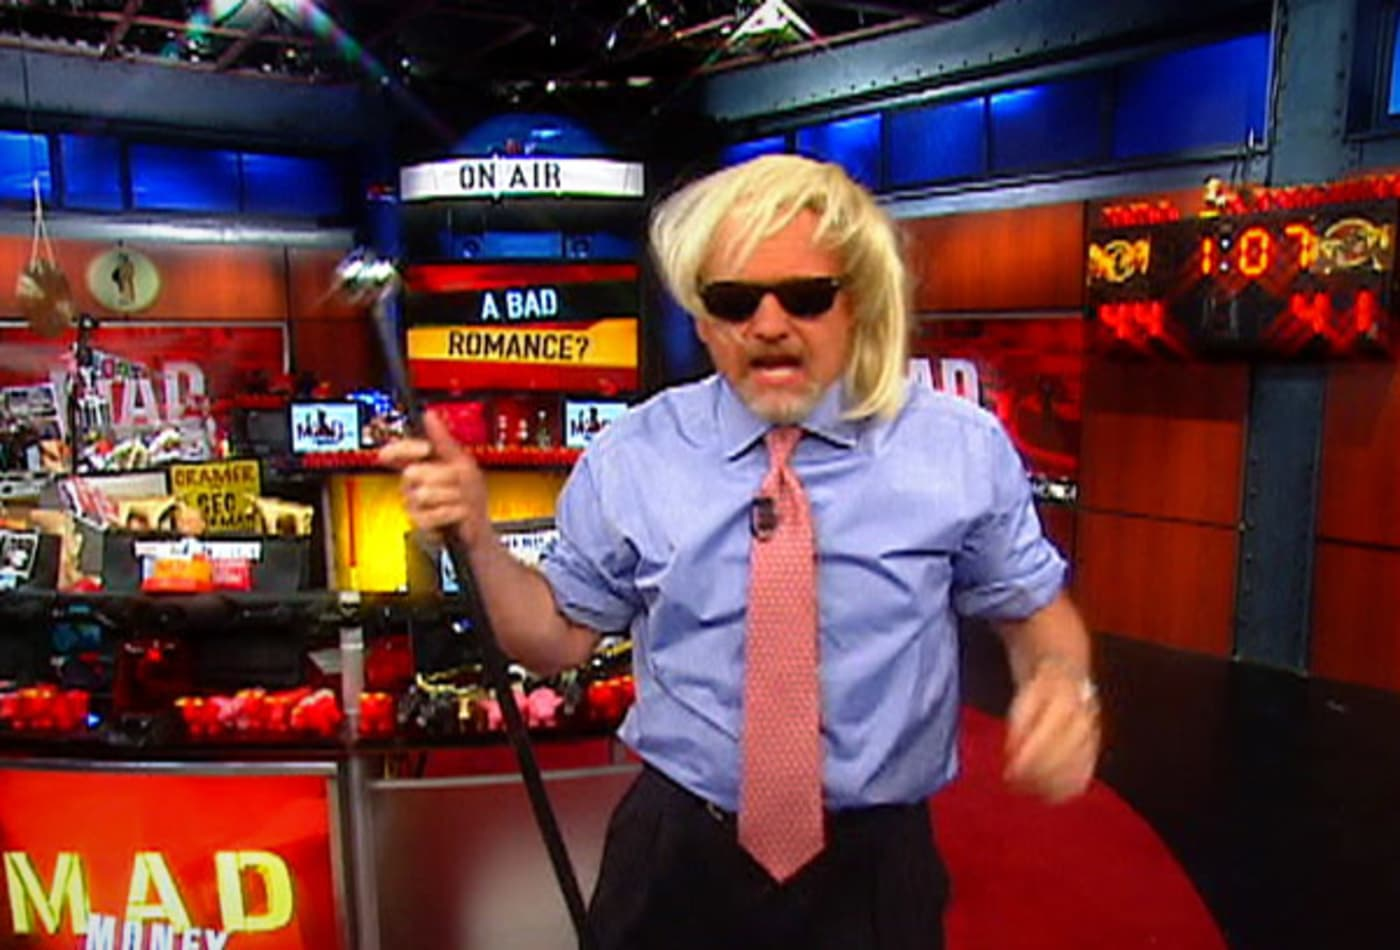 Lady-Gaga-Craziest-Costume-Ideas-Jim-Cramer.jpg